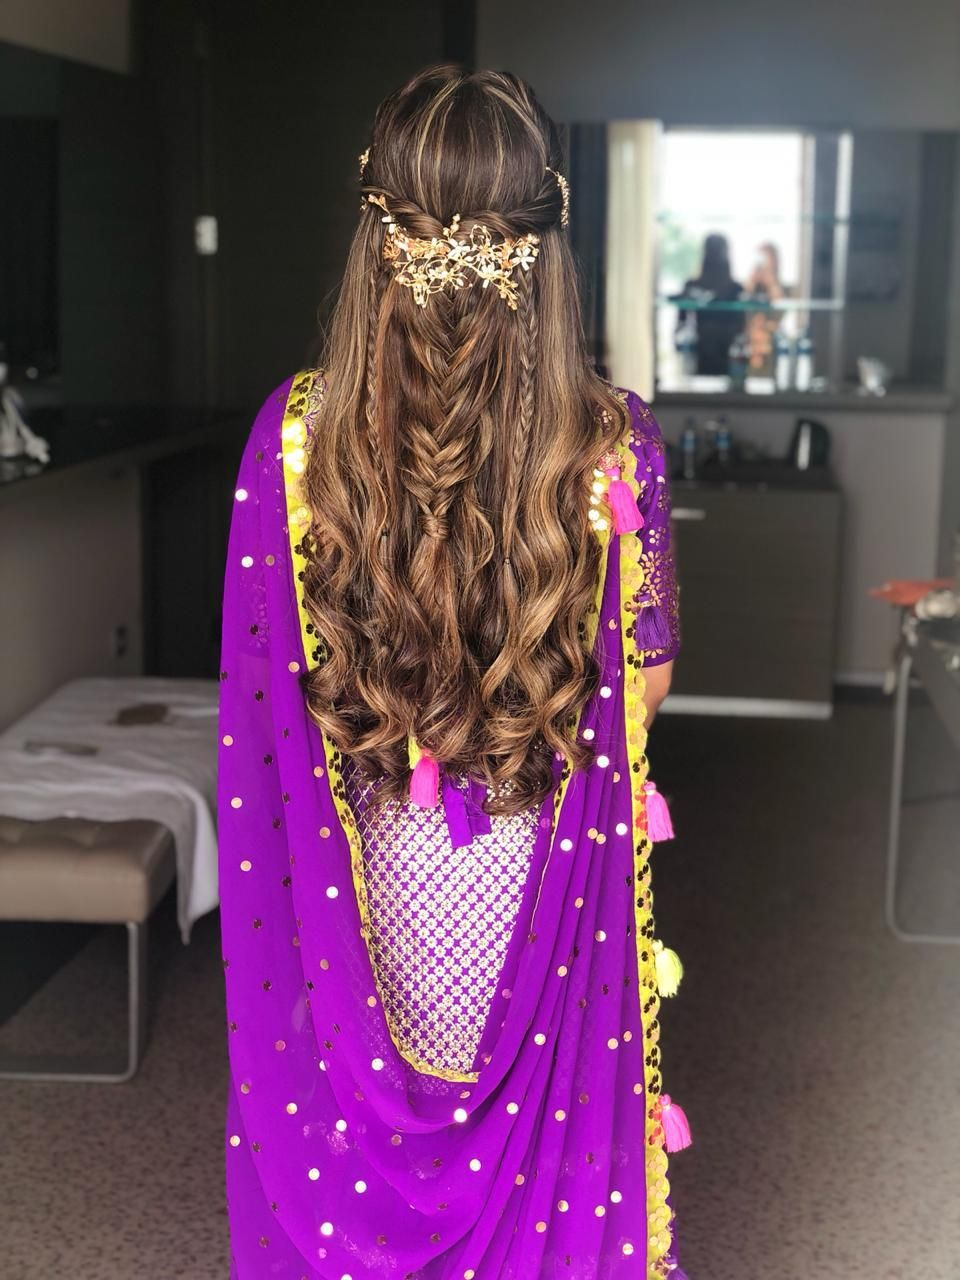 Photo of Pretty mehendi hairstyle with wavy hair and accessory